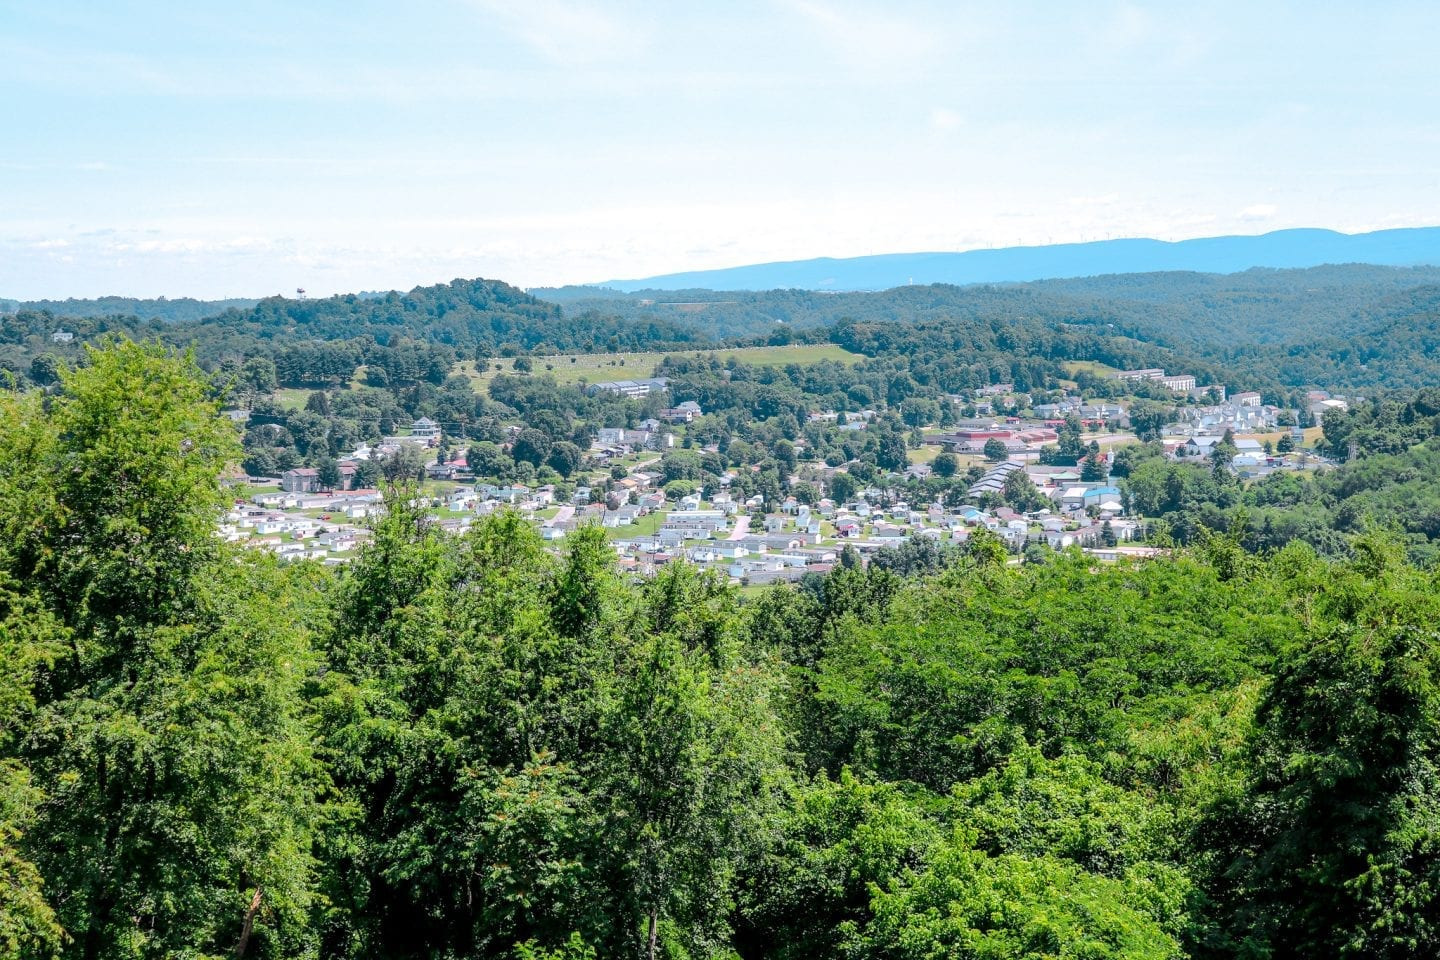 Things To Do In Morgantown West Virginia